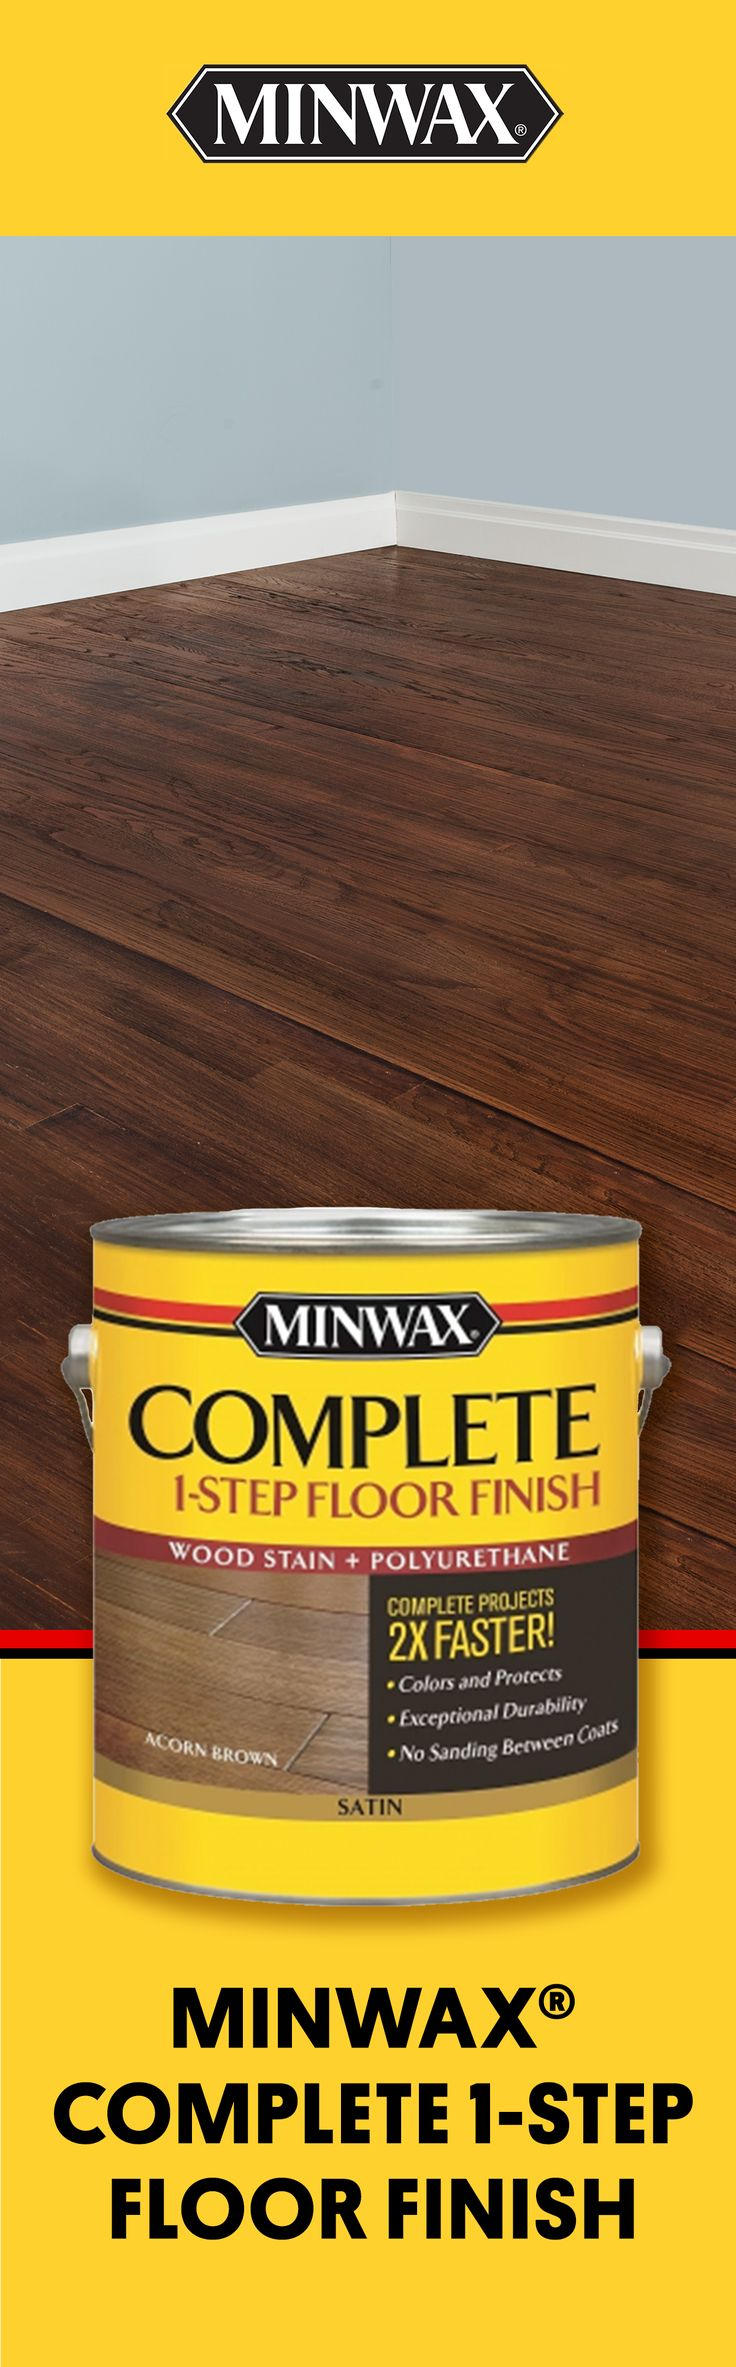 Wood by sanding the floors minwax floor finishes minwax floor finishes - Ready To Bring Your Wood Floors To Life Apply Rich Color And Protective Finish In Floor Finishesminwaxrich